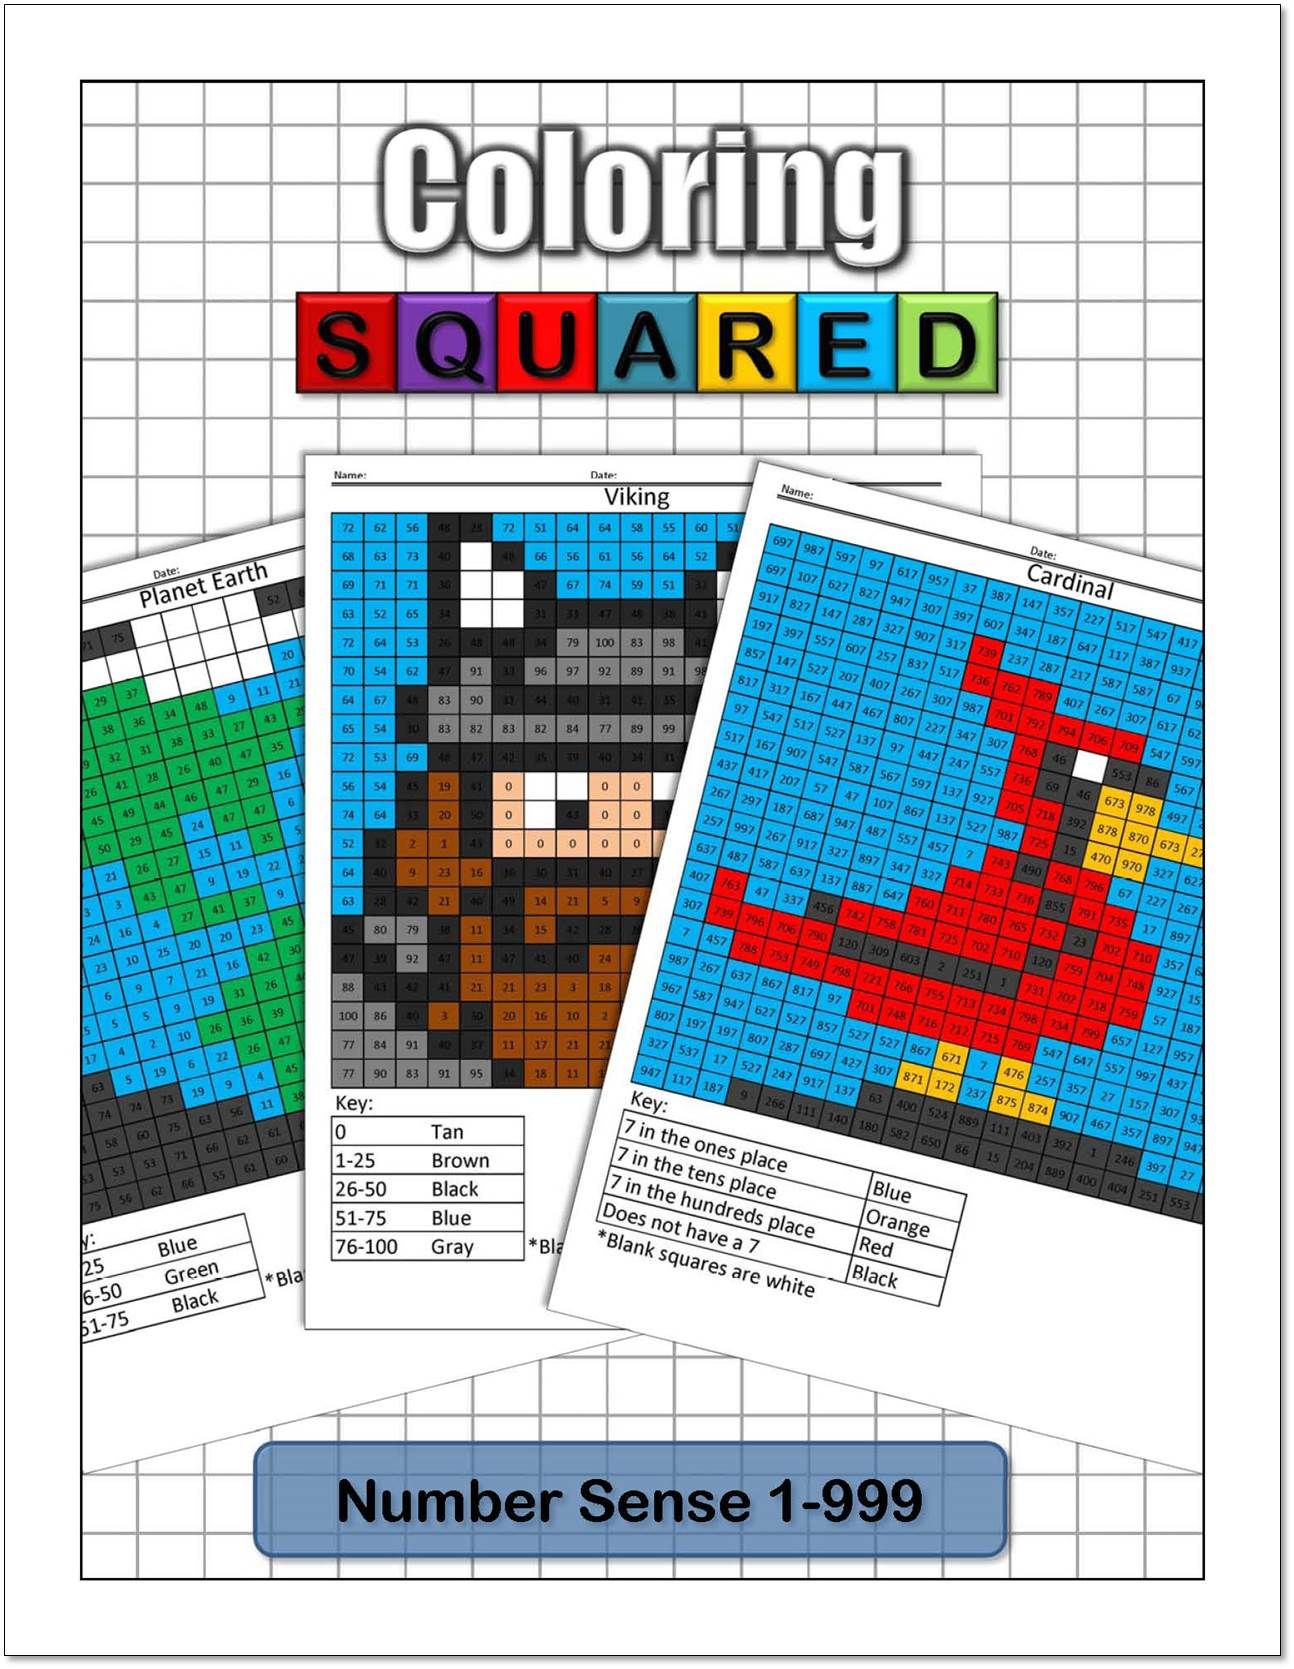 Place Value Coloring Pages Coloring Squared Place Value Worksheets Place Values Math Coloring Worksheets [ 1669 x 1294 Pixel ]